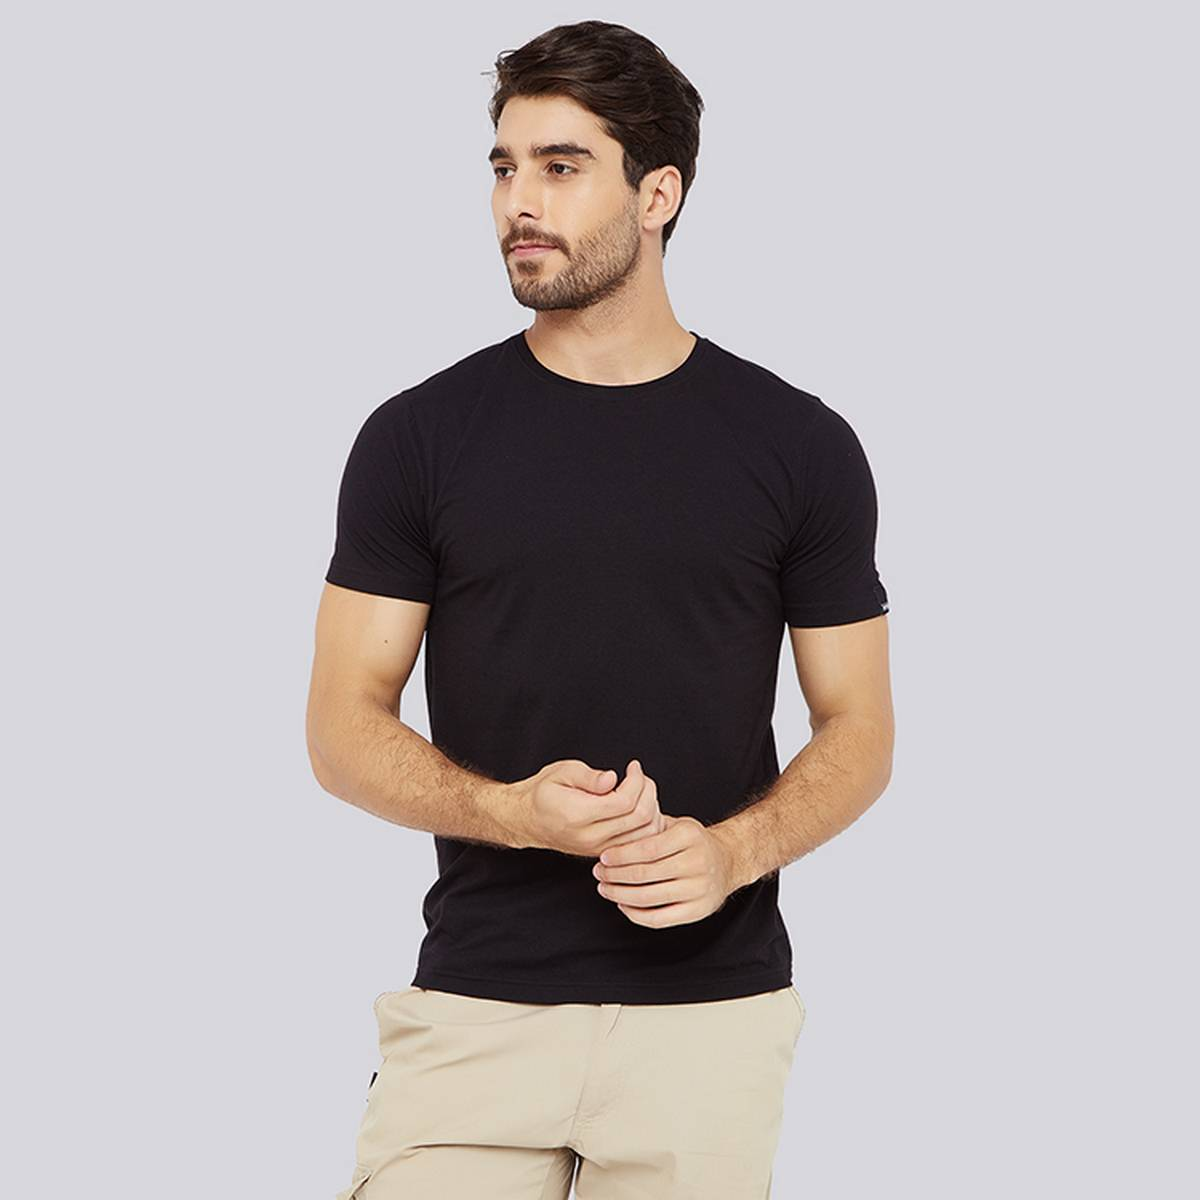 Summer Tee Shirts Jersey Cotton Short Sleeves Plain T-Shirts for Men Workout and Casual Wearing